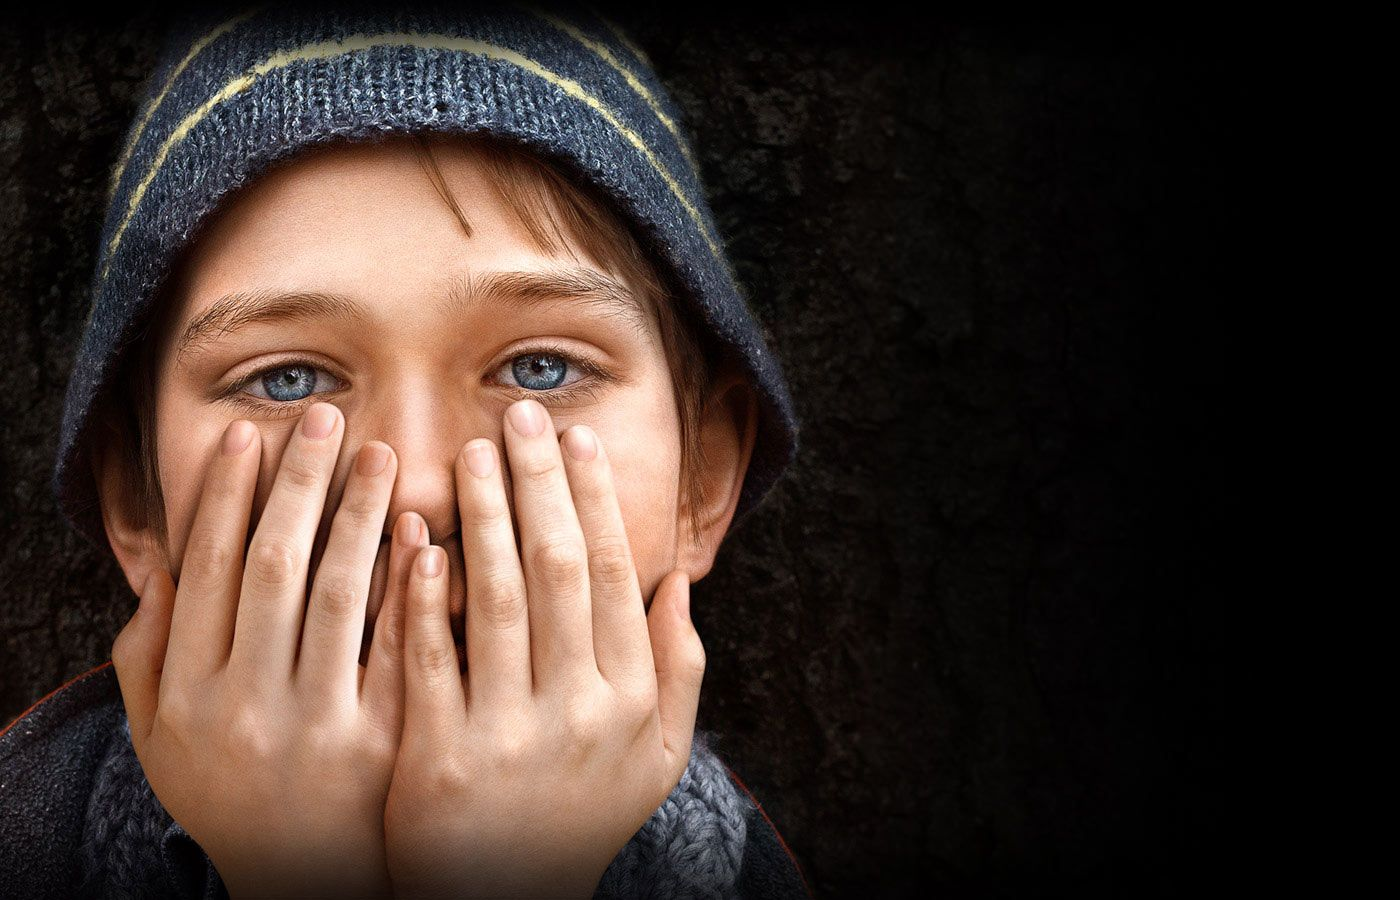 Extremely Loud and Incredibly Close. Really want to see